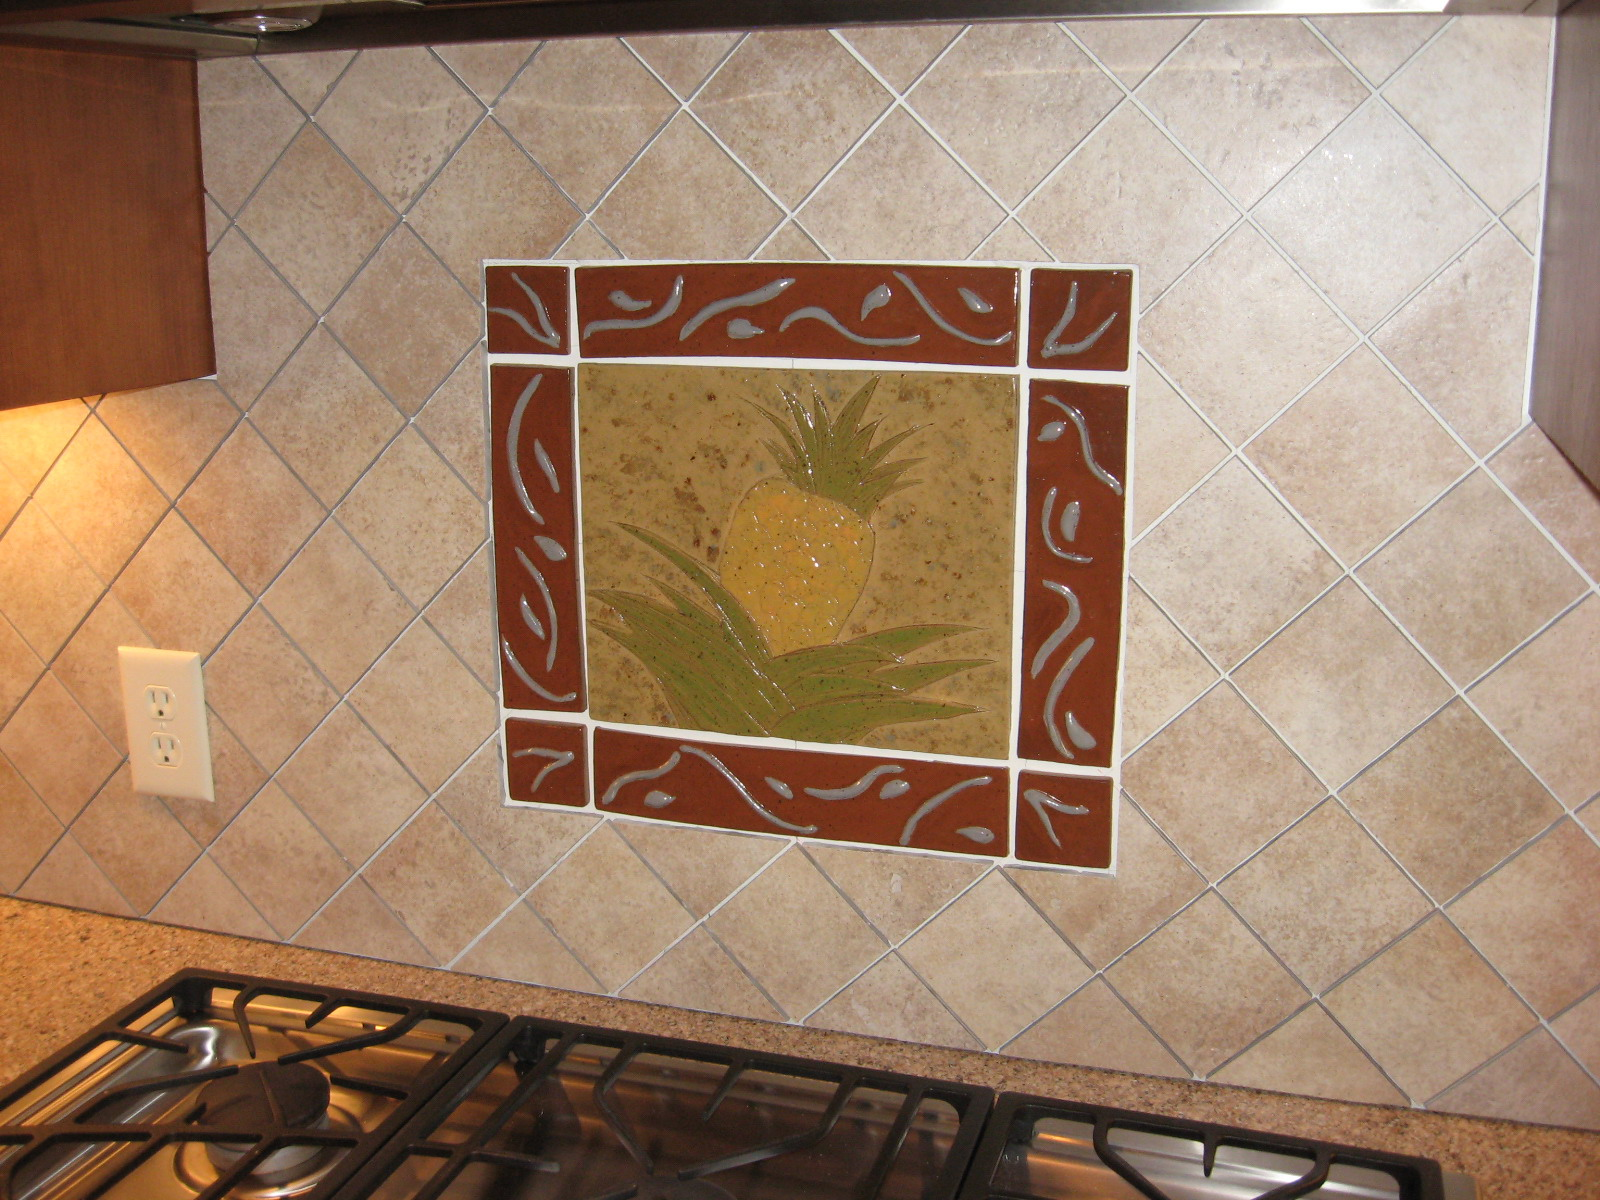 Backsplash completed - custom pineapple deco.